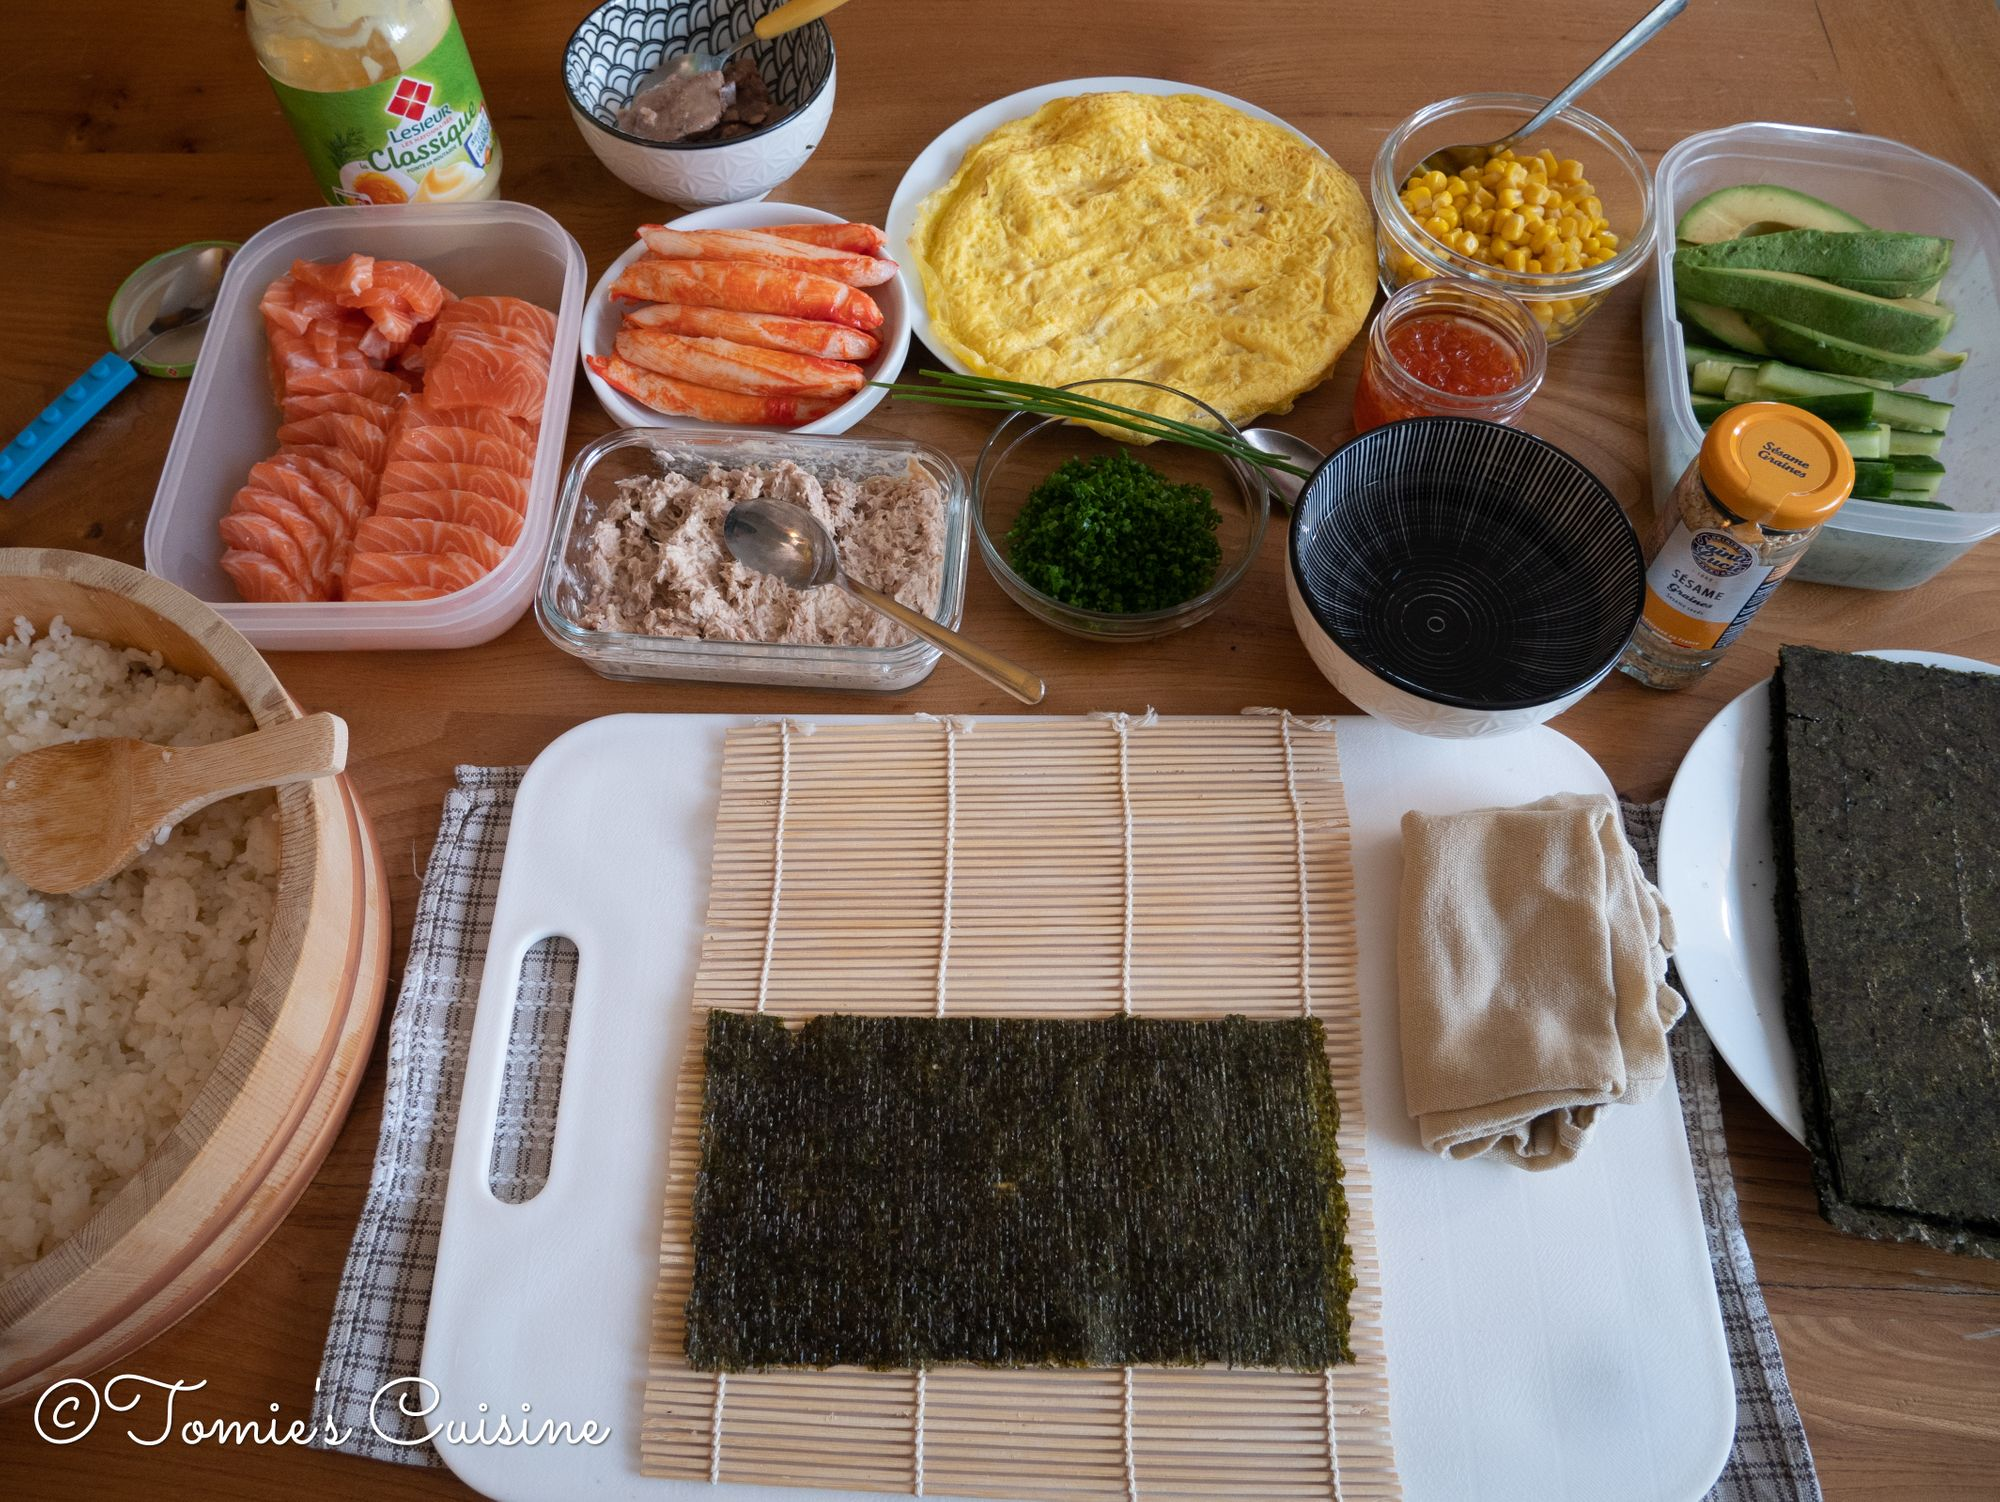 My set up to make sushi maki (roll) for today!